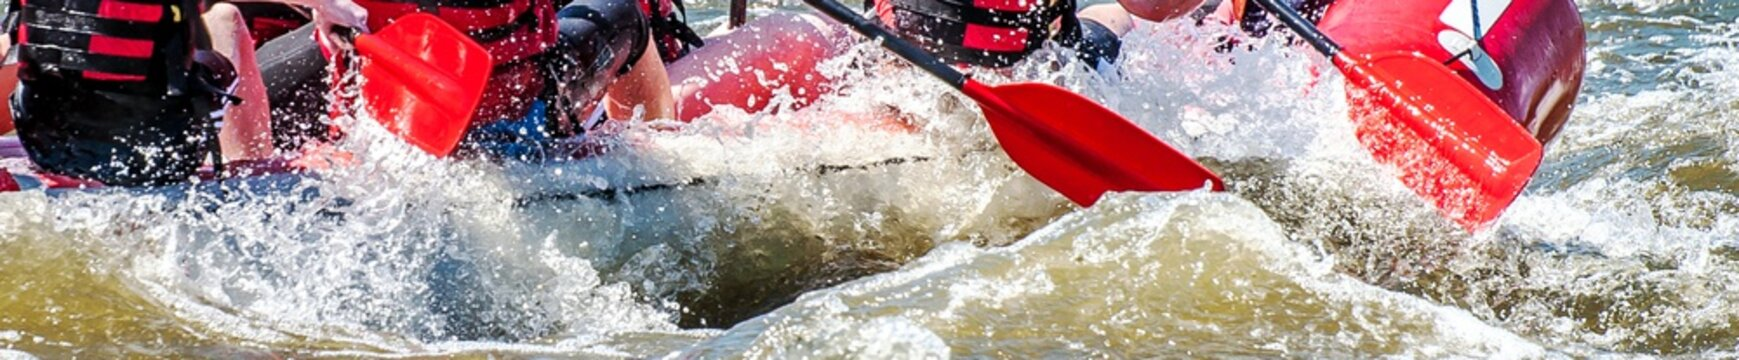 Rafting, kayaking. Extreme sport. Water ecological tourism. Close-up view of oars with splashing water.